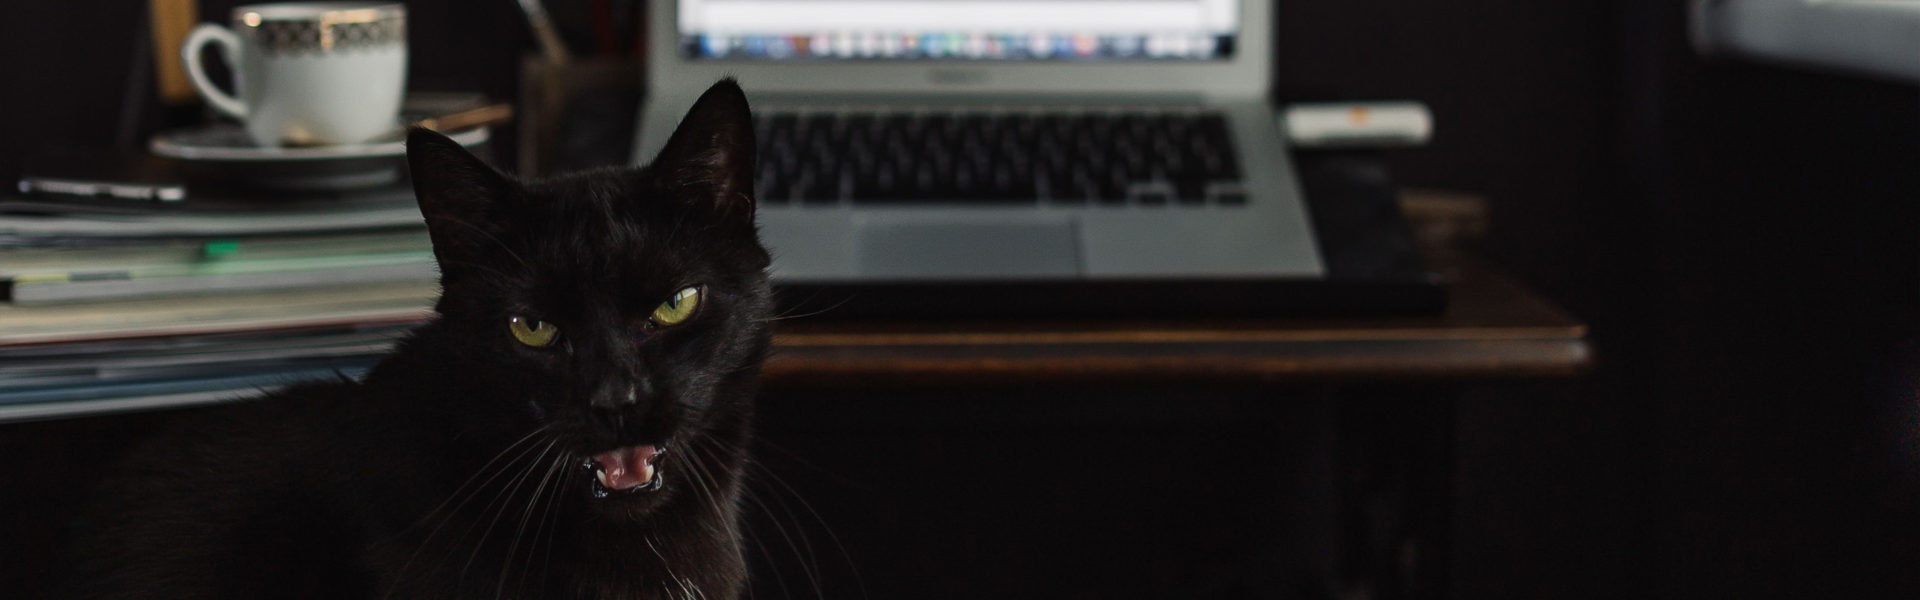 black cat and computer